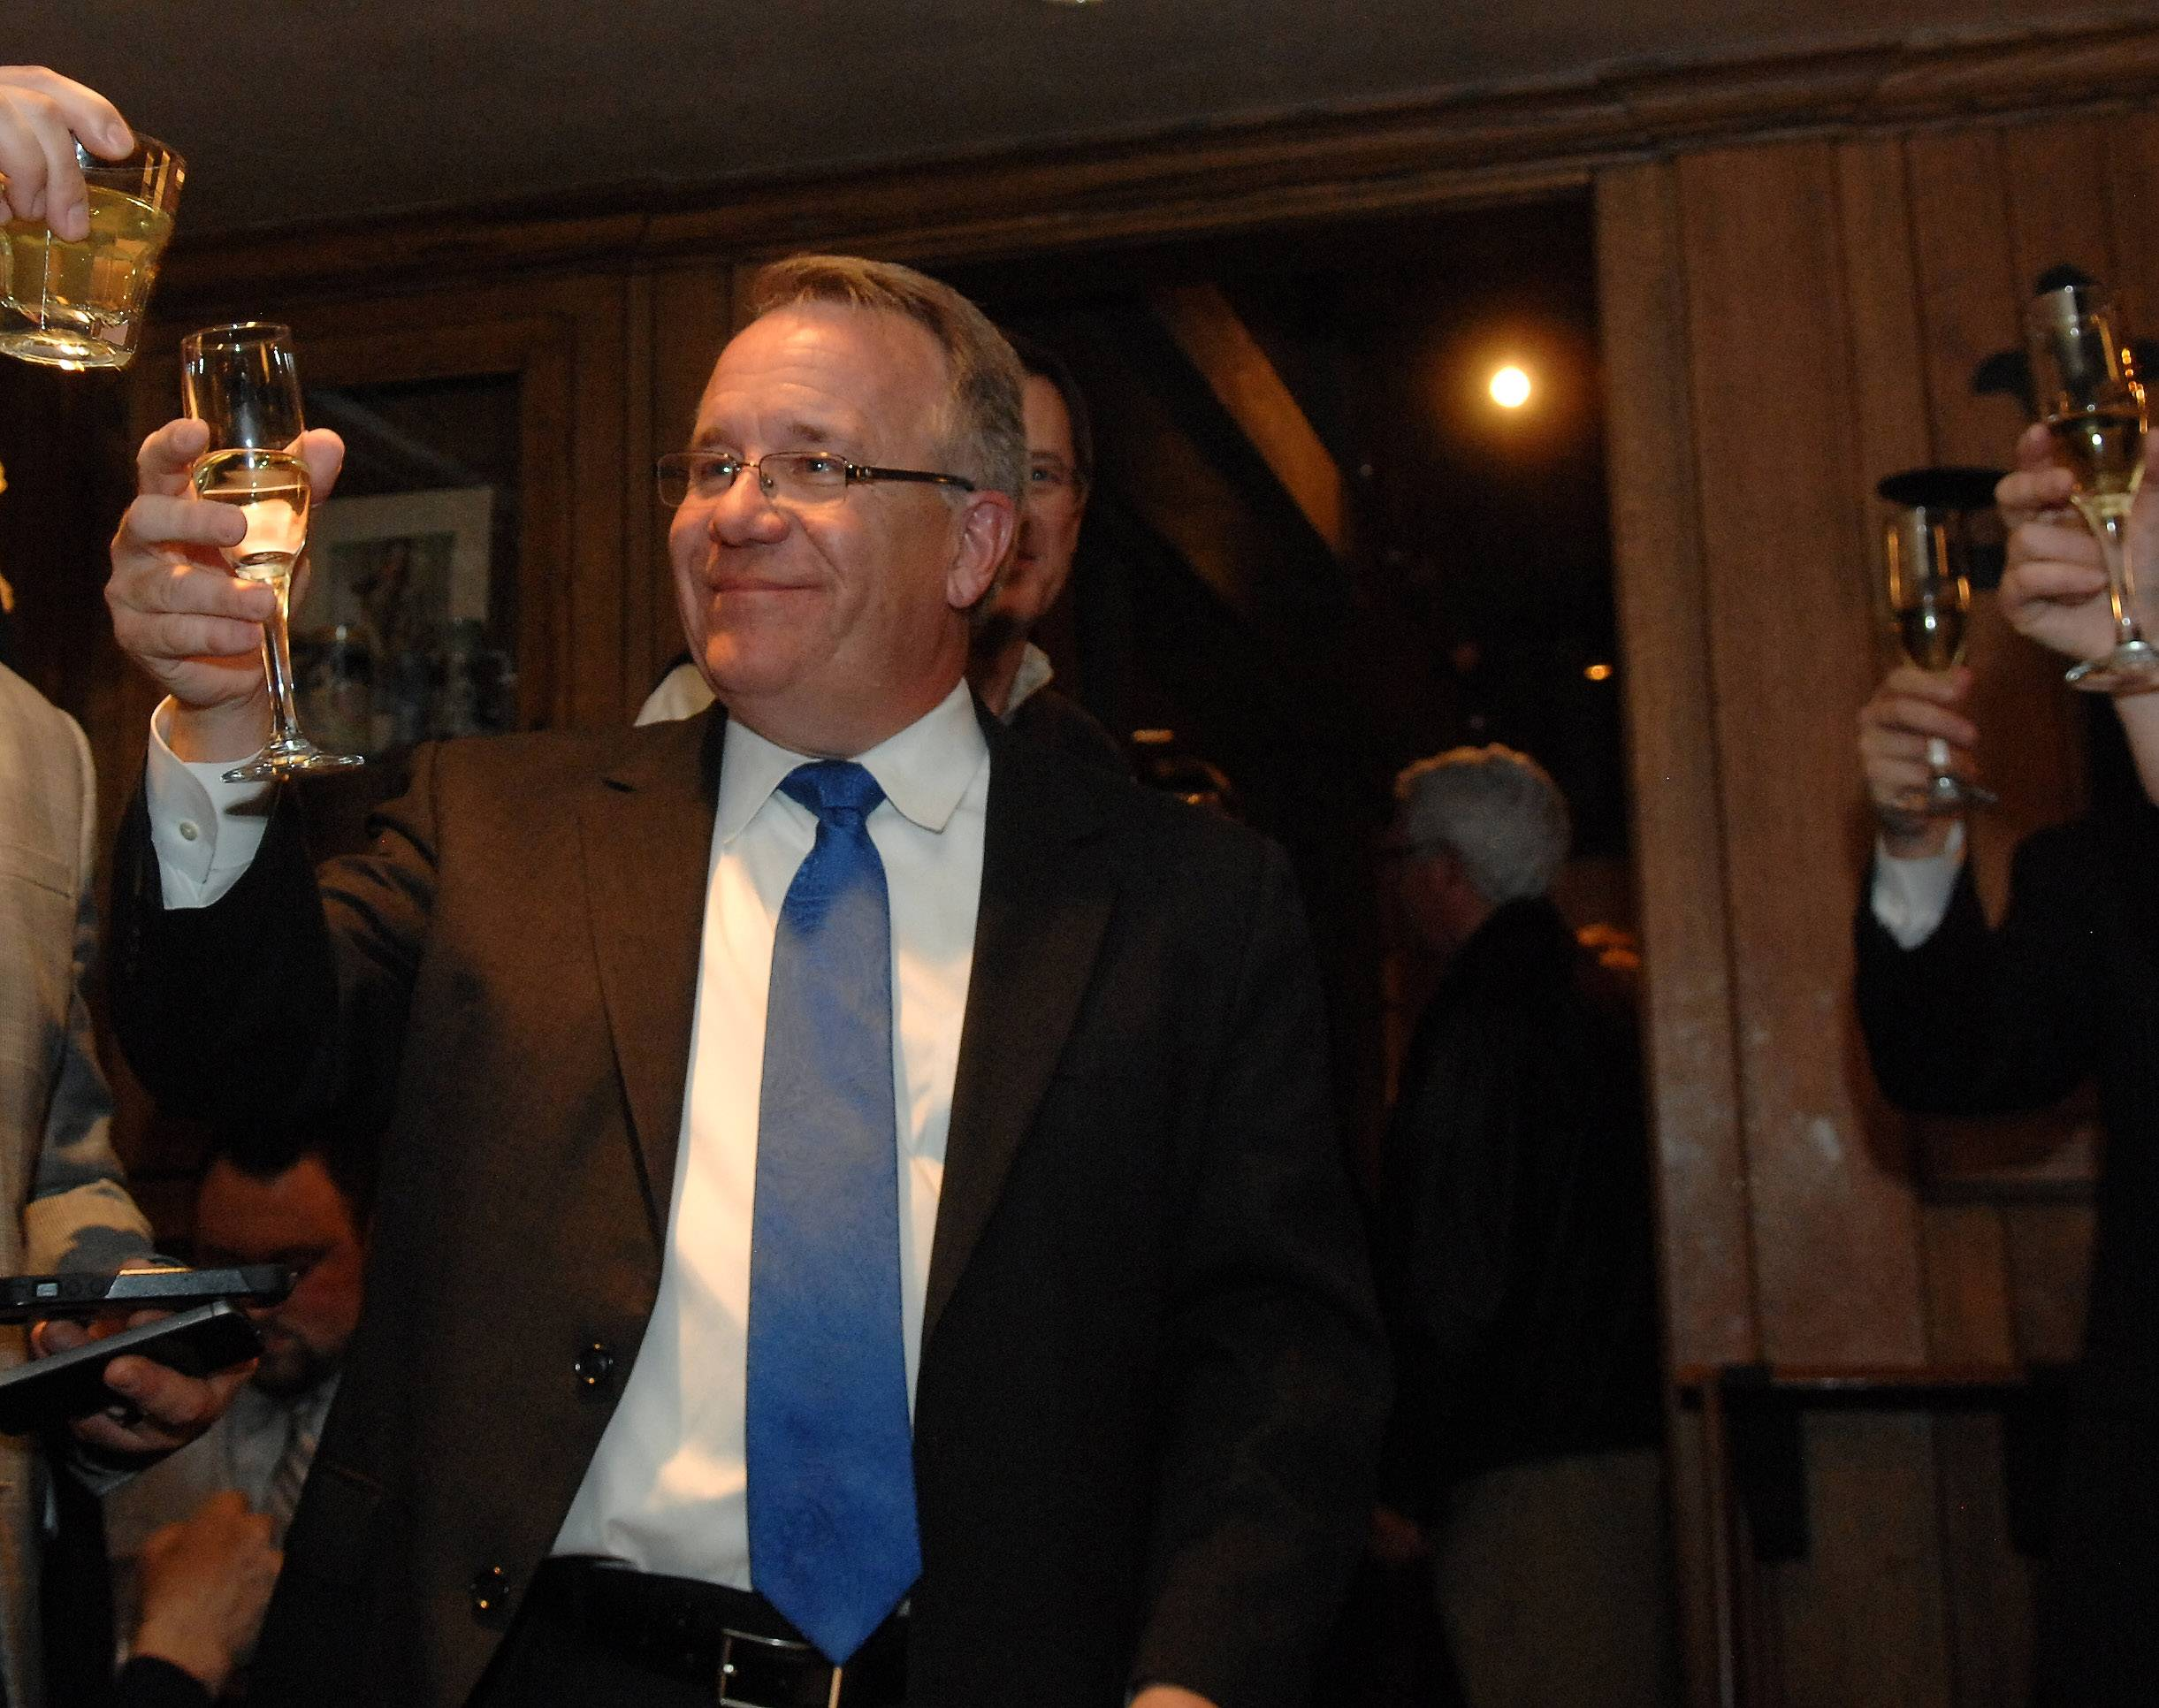 Everyone raises a glass to toast Steve Andersson of Geneva after his victory speech at the Village Squire in South Elgin Tuesday. He won the Republican nomination for state 65th House District.